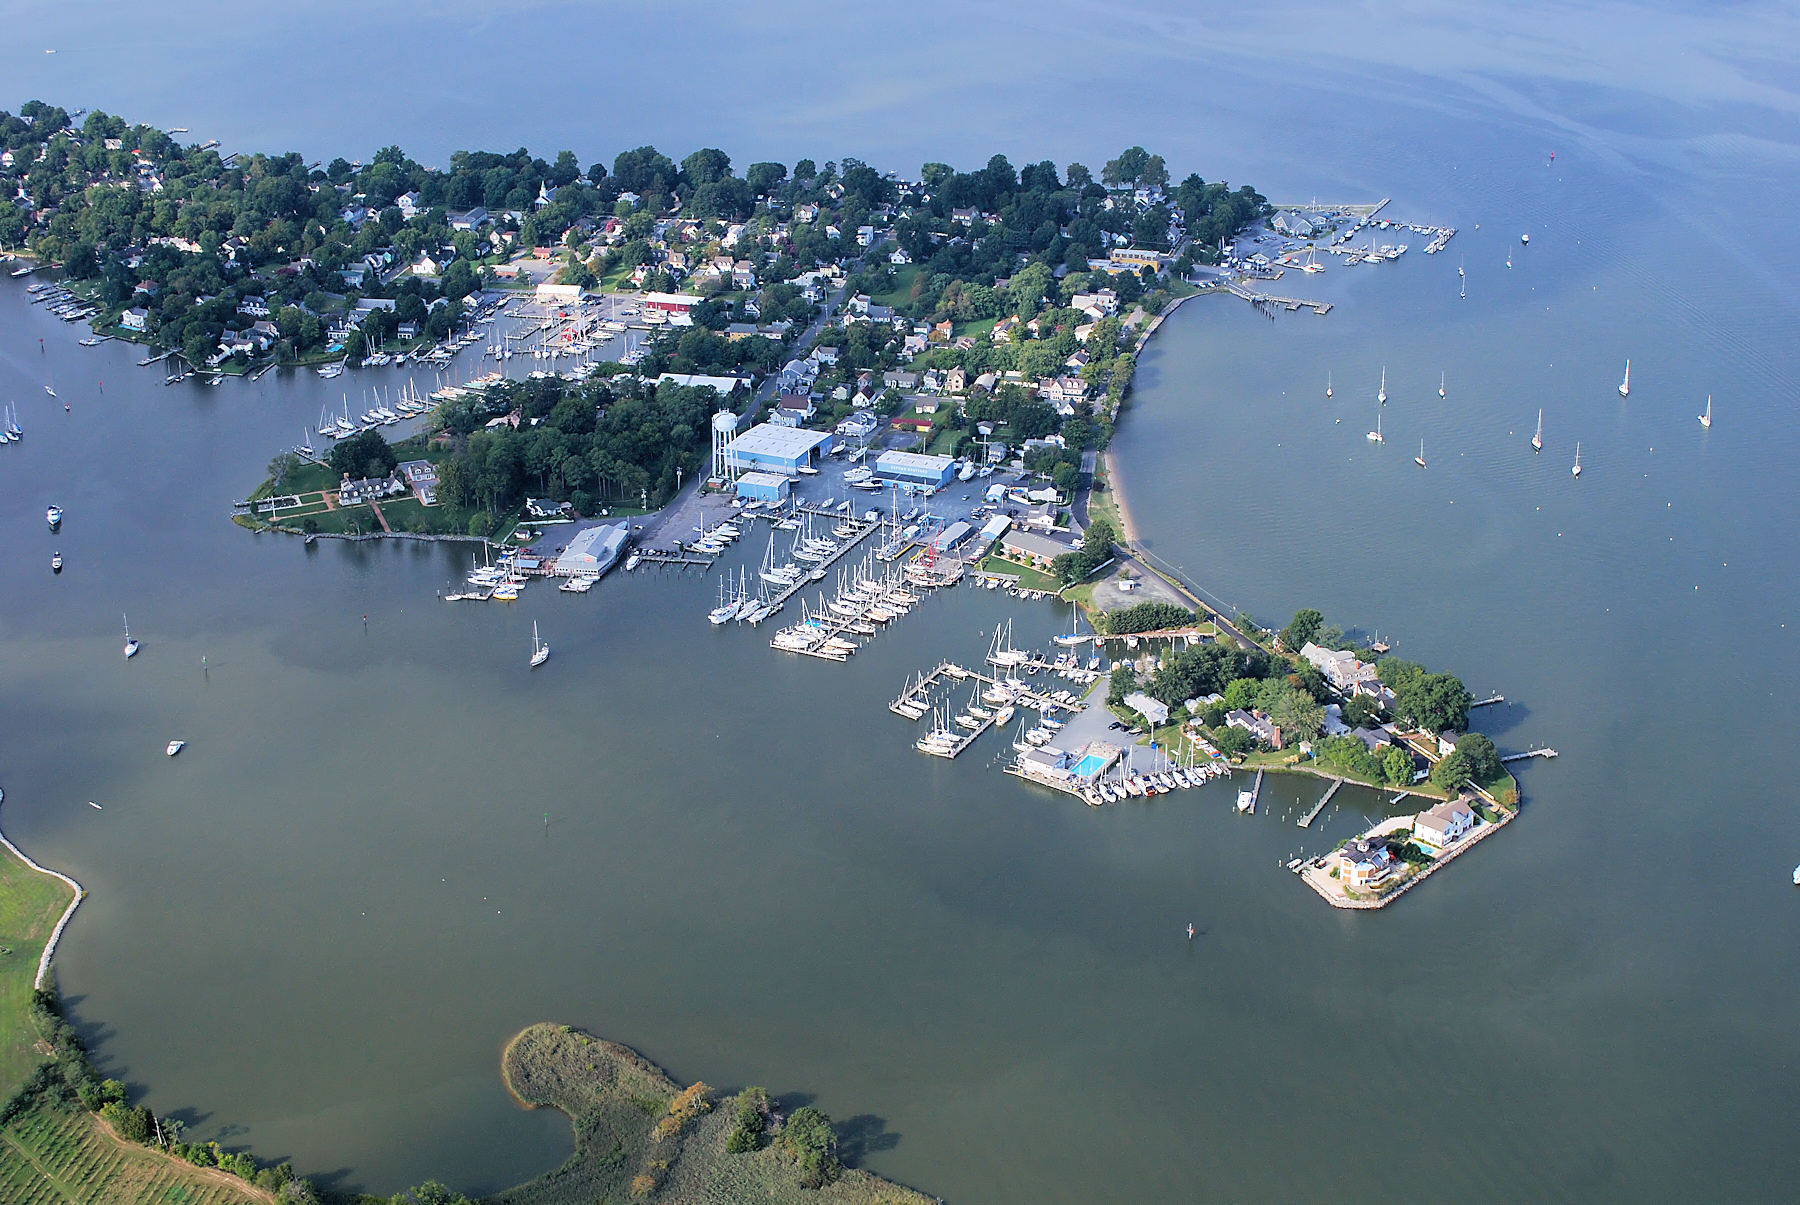 Aerial Photos Of The Chesapeake Bay Area